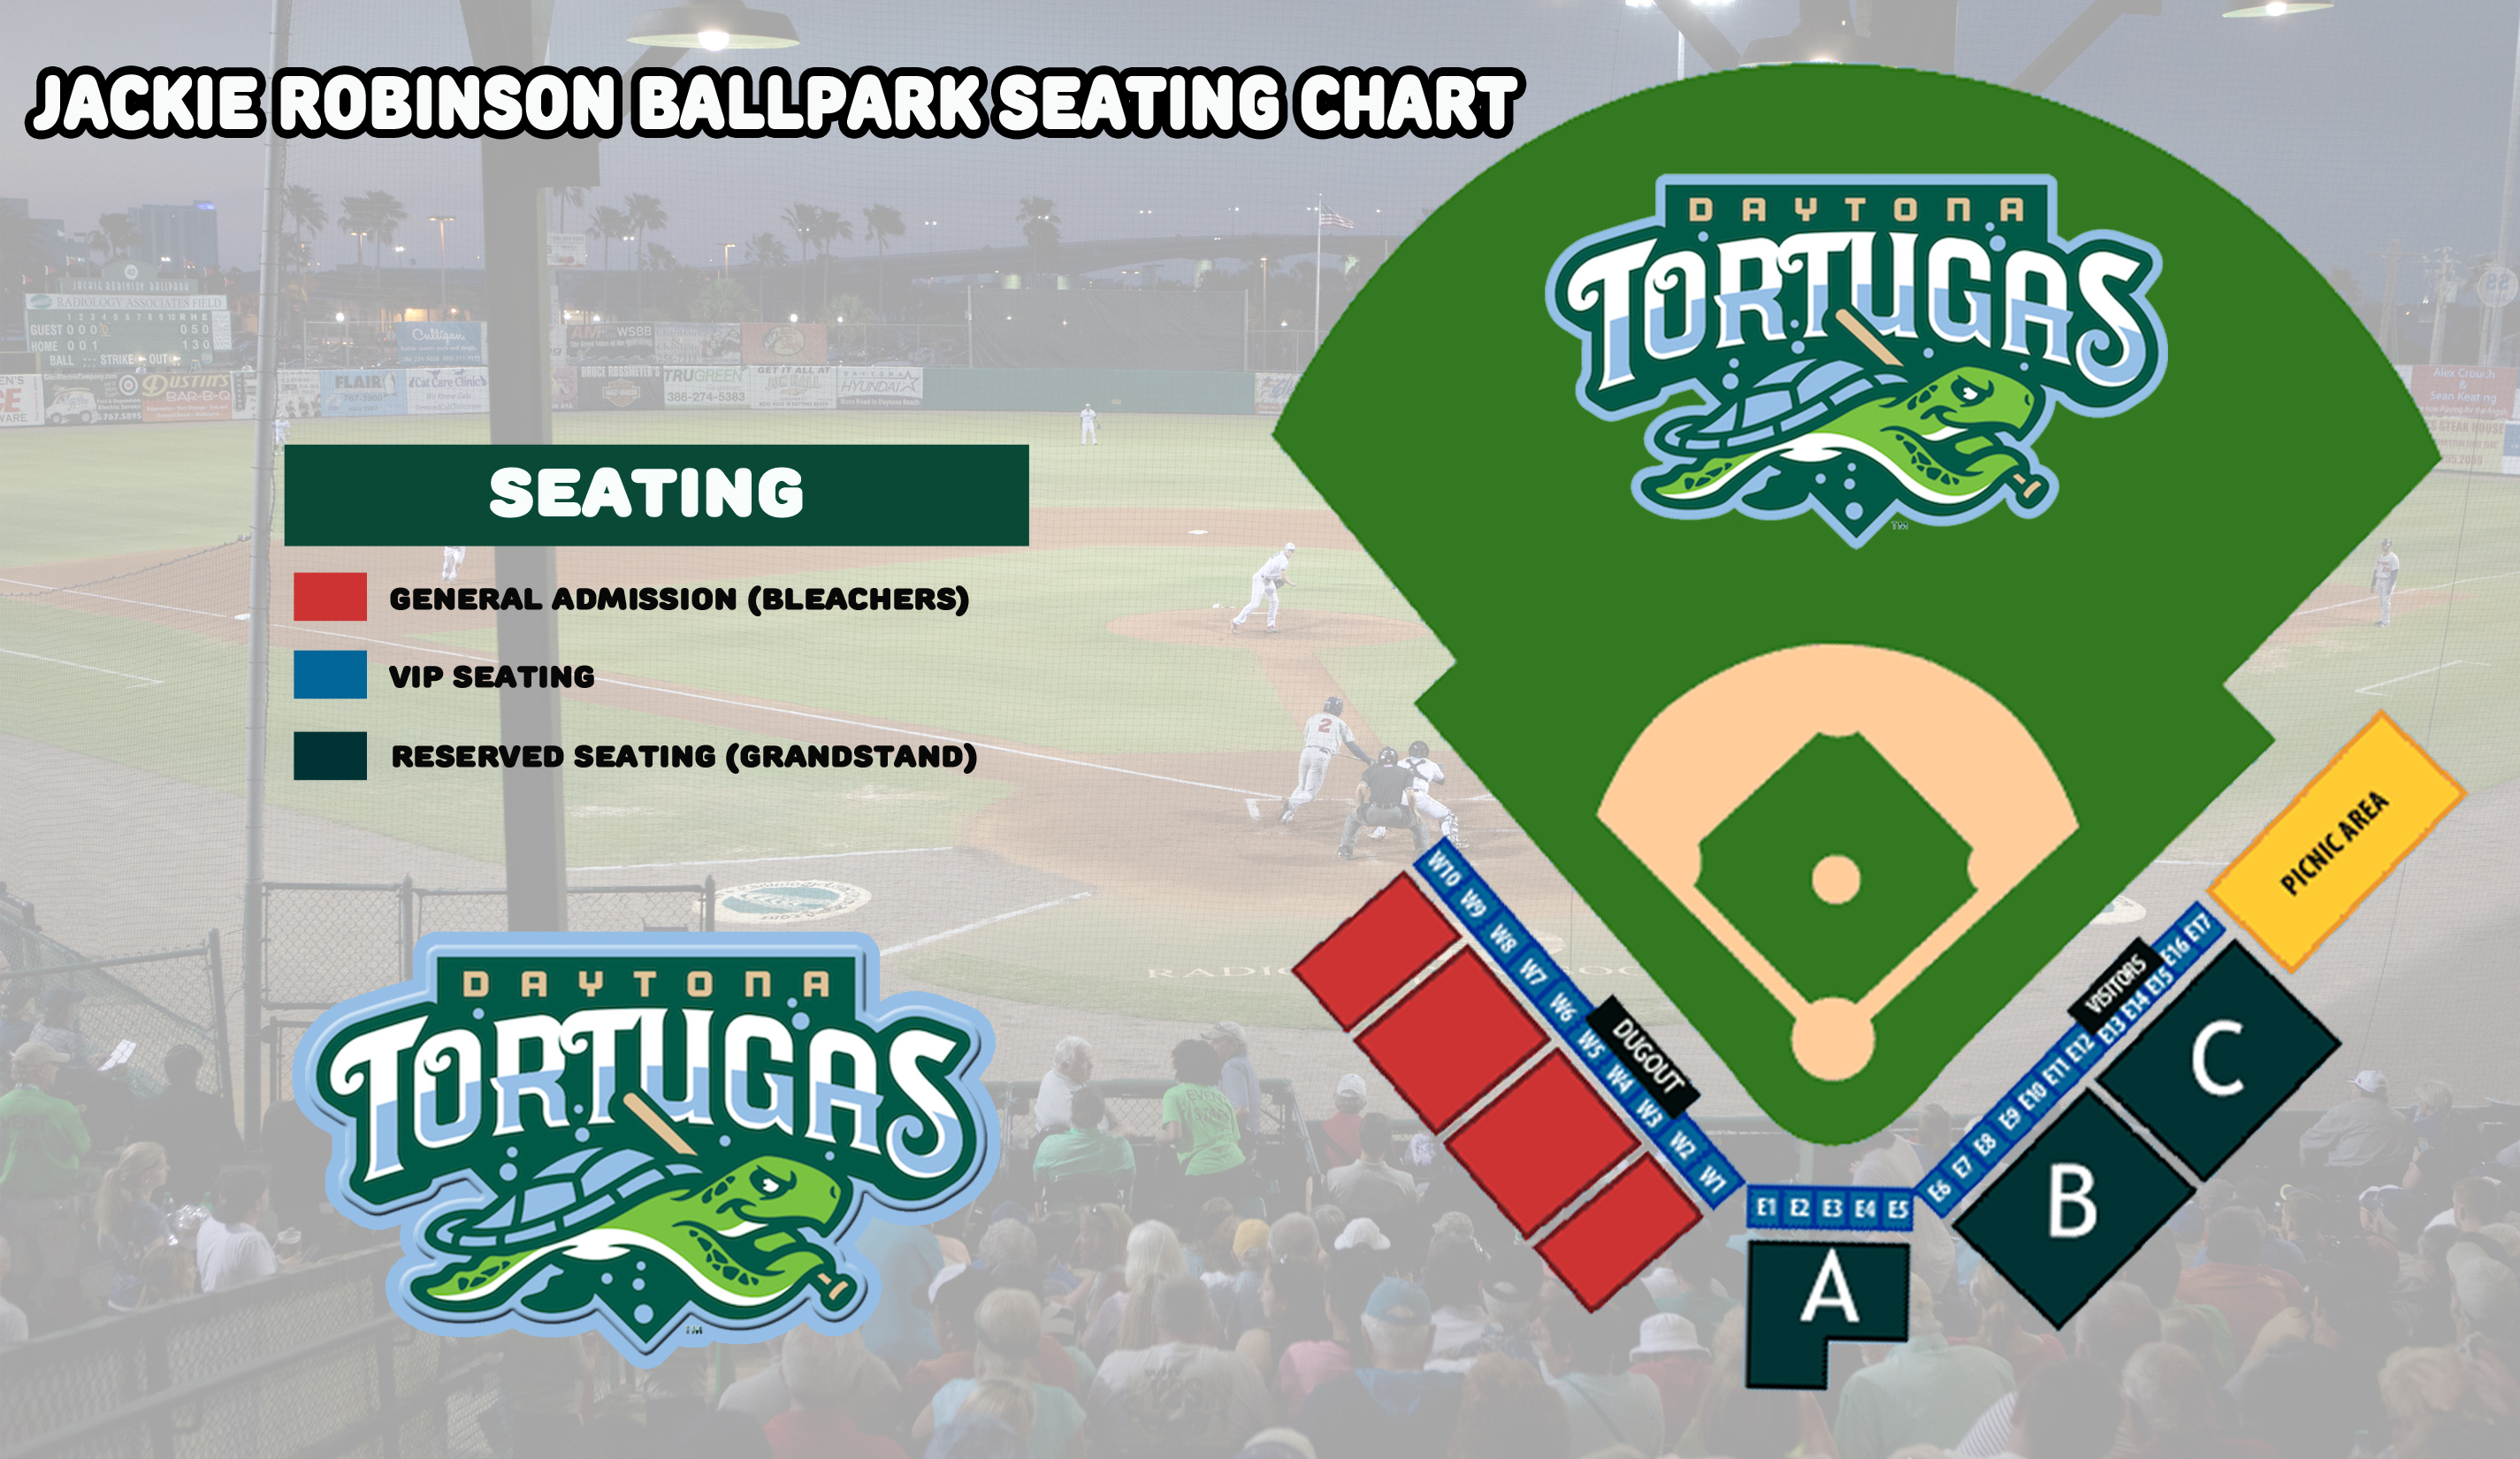 2017 seating chart